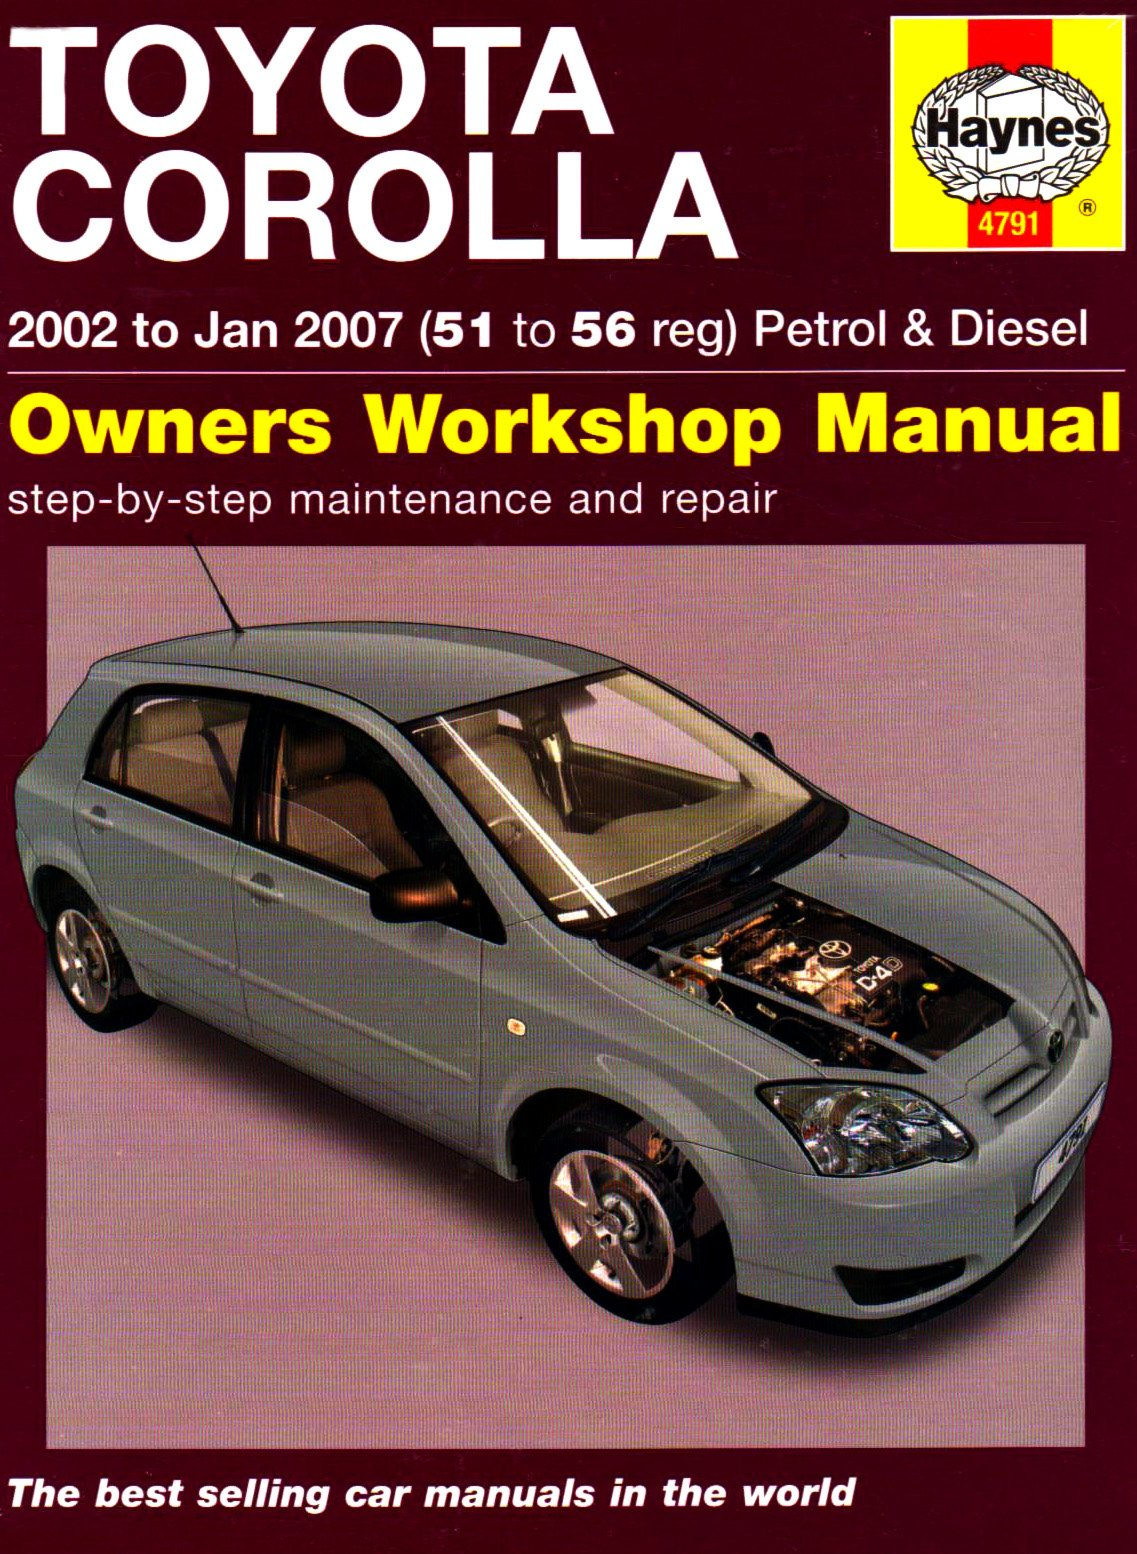 toyota corolla petrol diesel 02 jan 07 haynes repair manual rh amazon co uk 2000 Toyota Corolla Engine Problems 2000 Toyota Corolla Dashboard